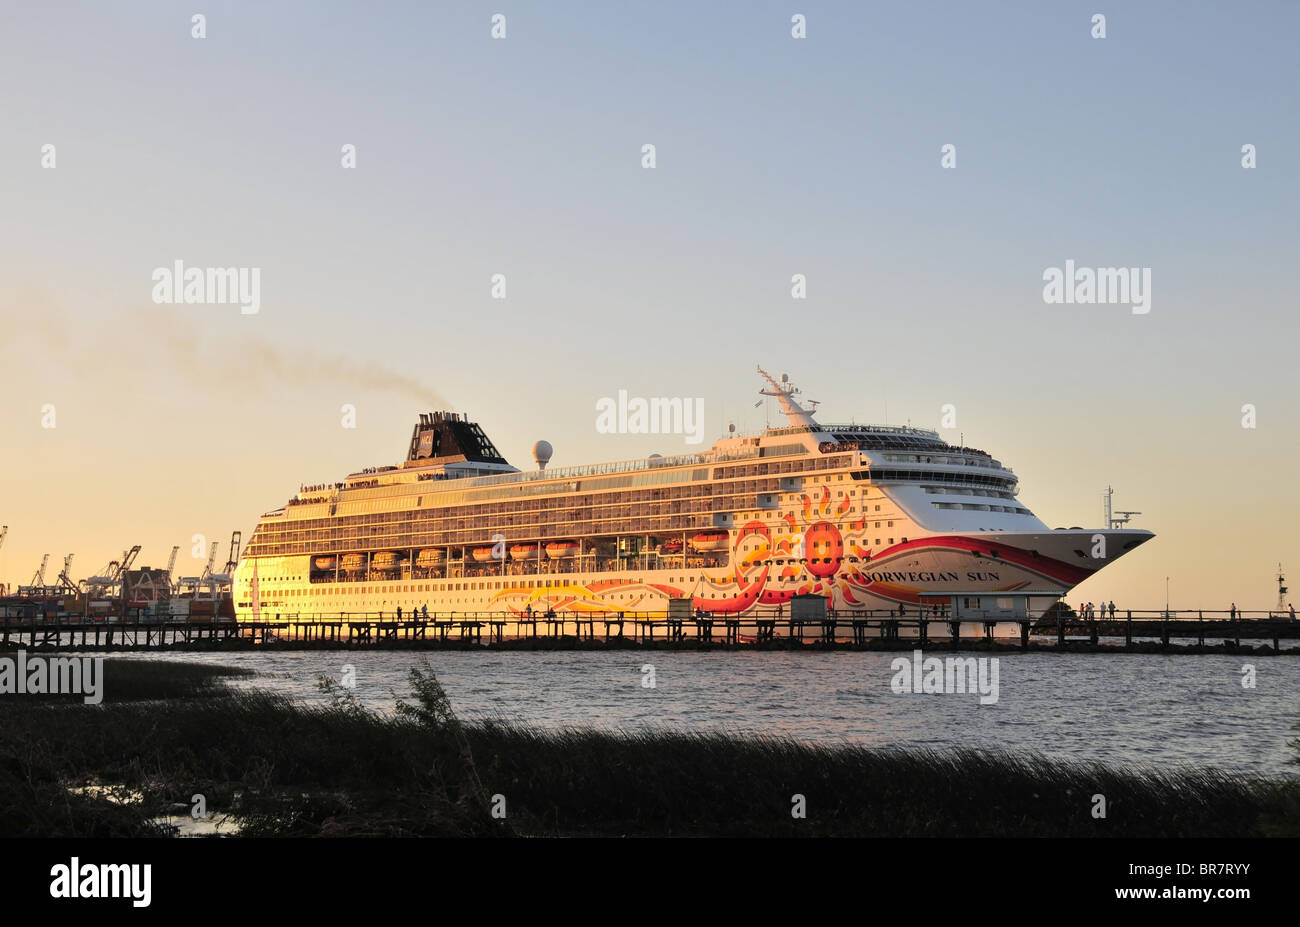 Norwegian Sun Cruise Ship, glowing in the evening sun, seen from the Costanera Ecologica Reserva Sur, River Plate, - Stock Image